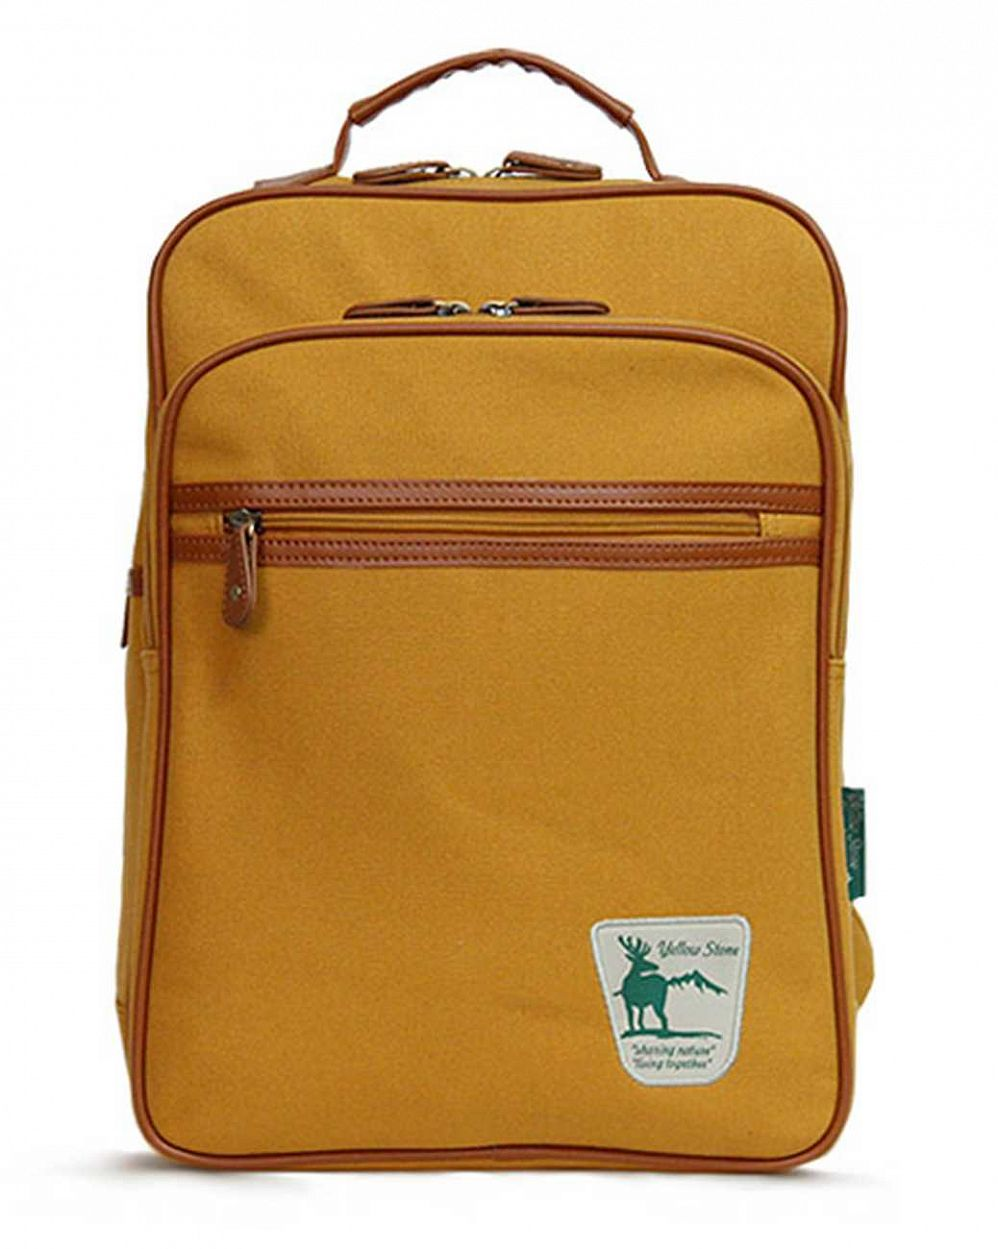 купить Рюкзак YellowStone Canvas Backpack II mustard YS Originals в Москве